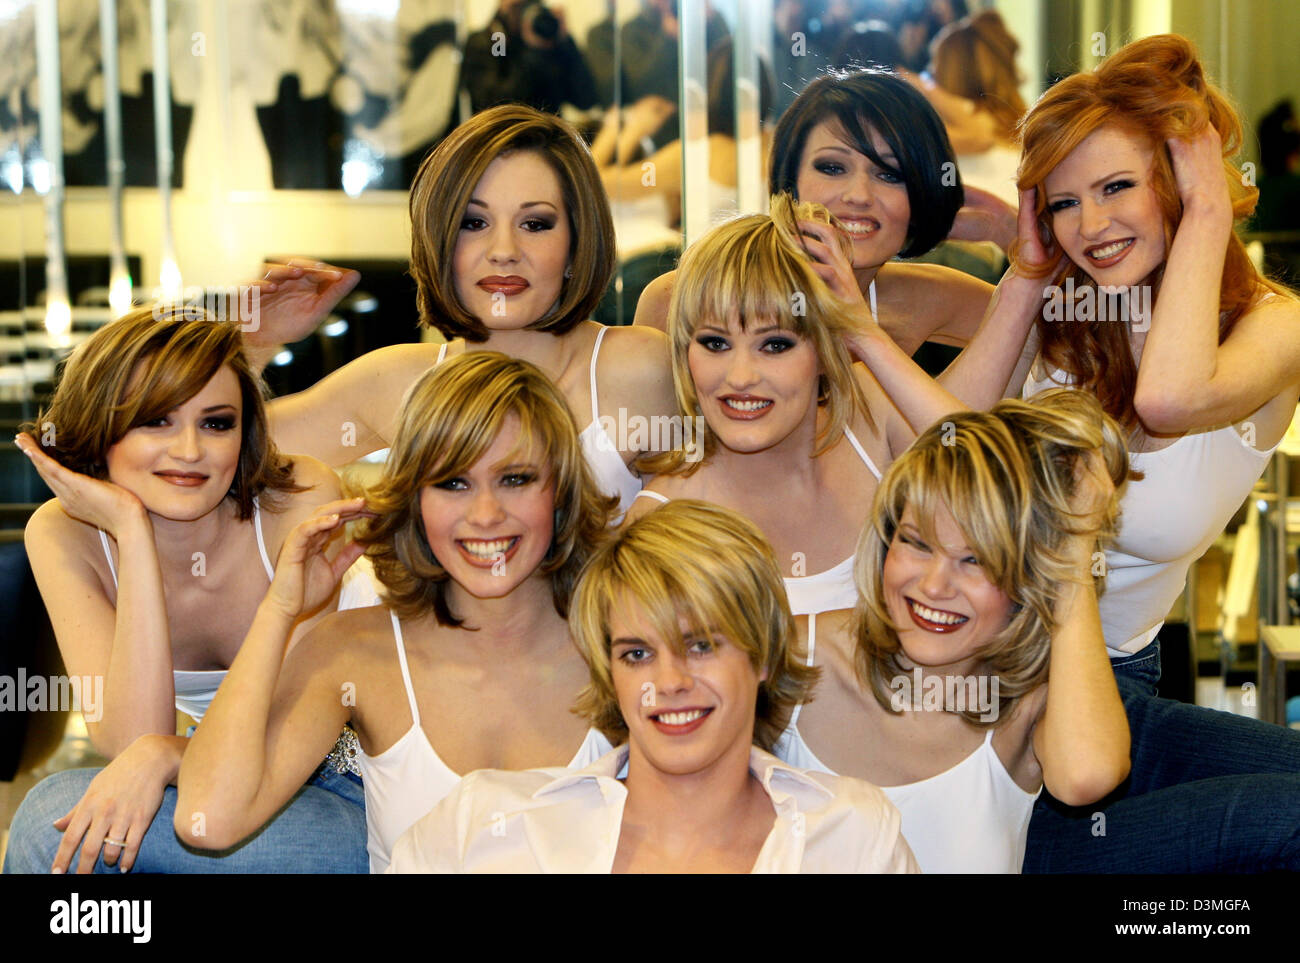 Models present the newest hairstyles at a photocall for the trade fair 'Top Hair International' in Duesseldorf, Stock Photo